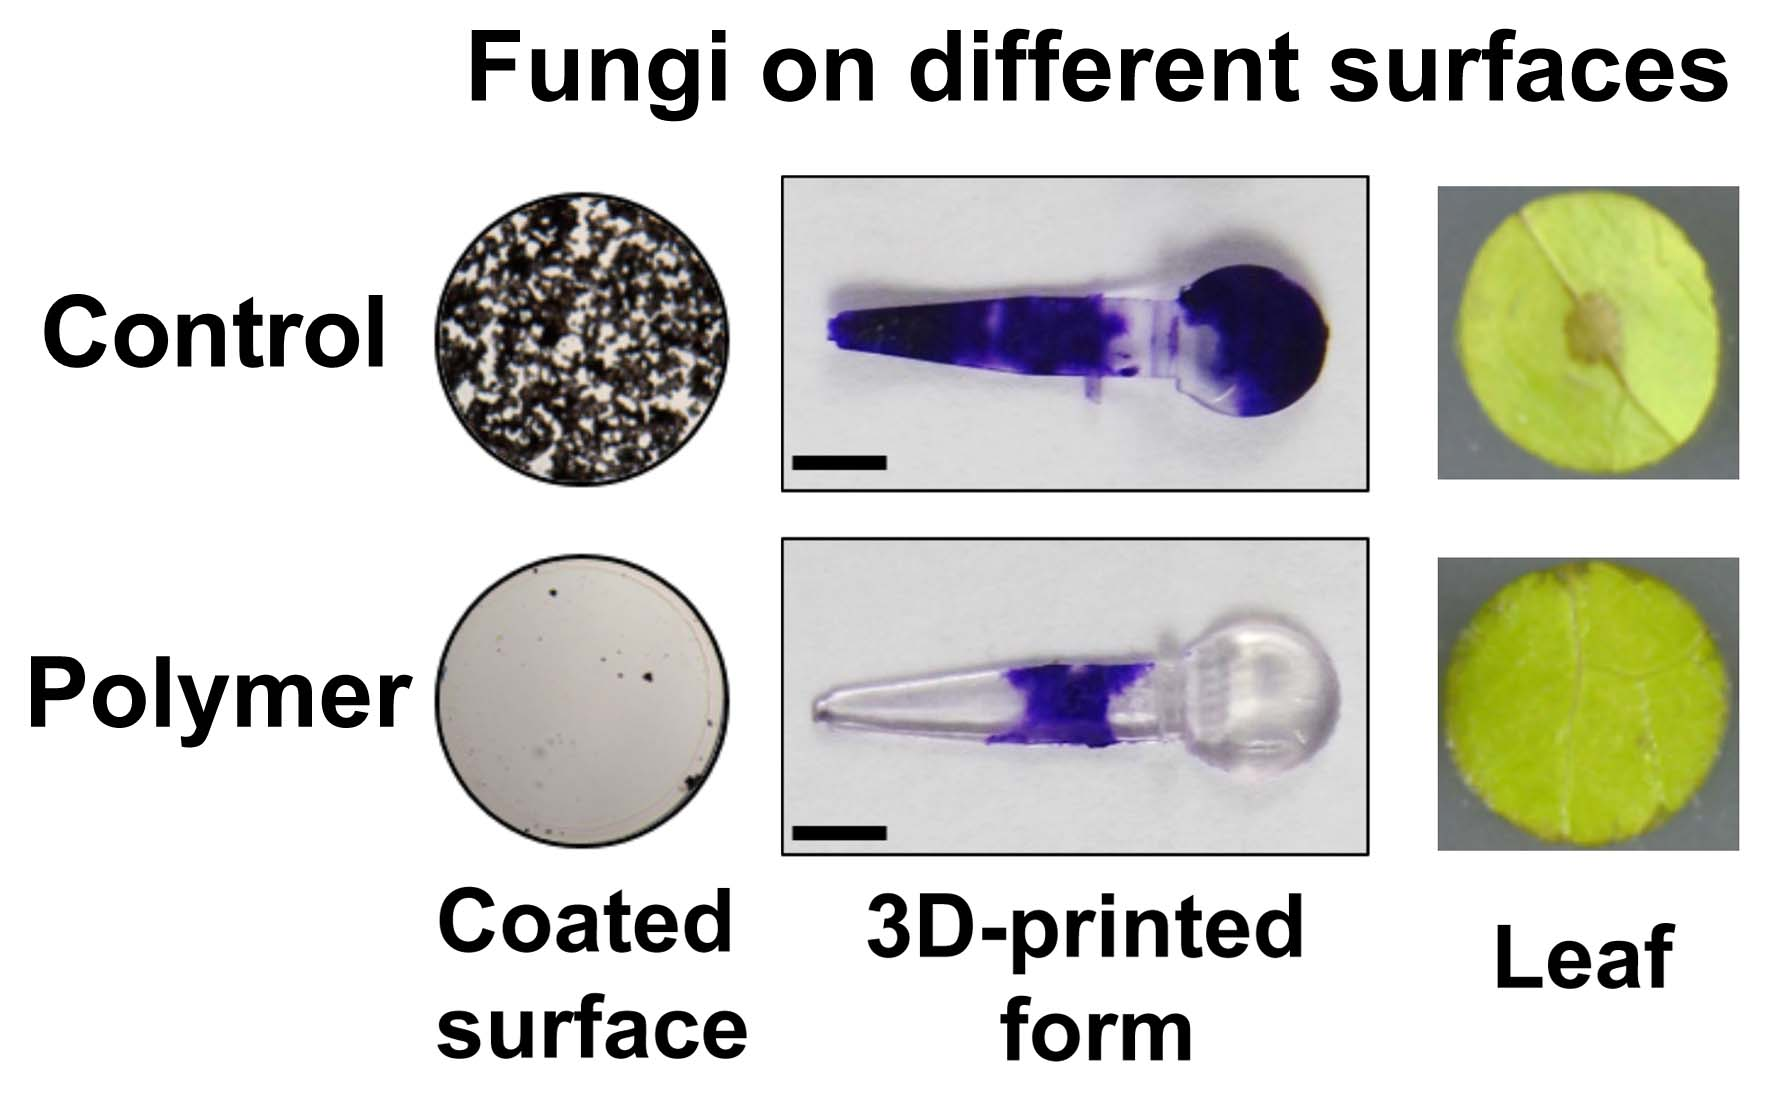 Fungi on different surfaces